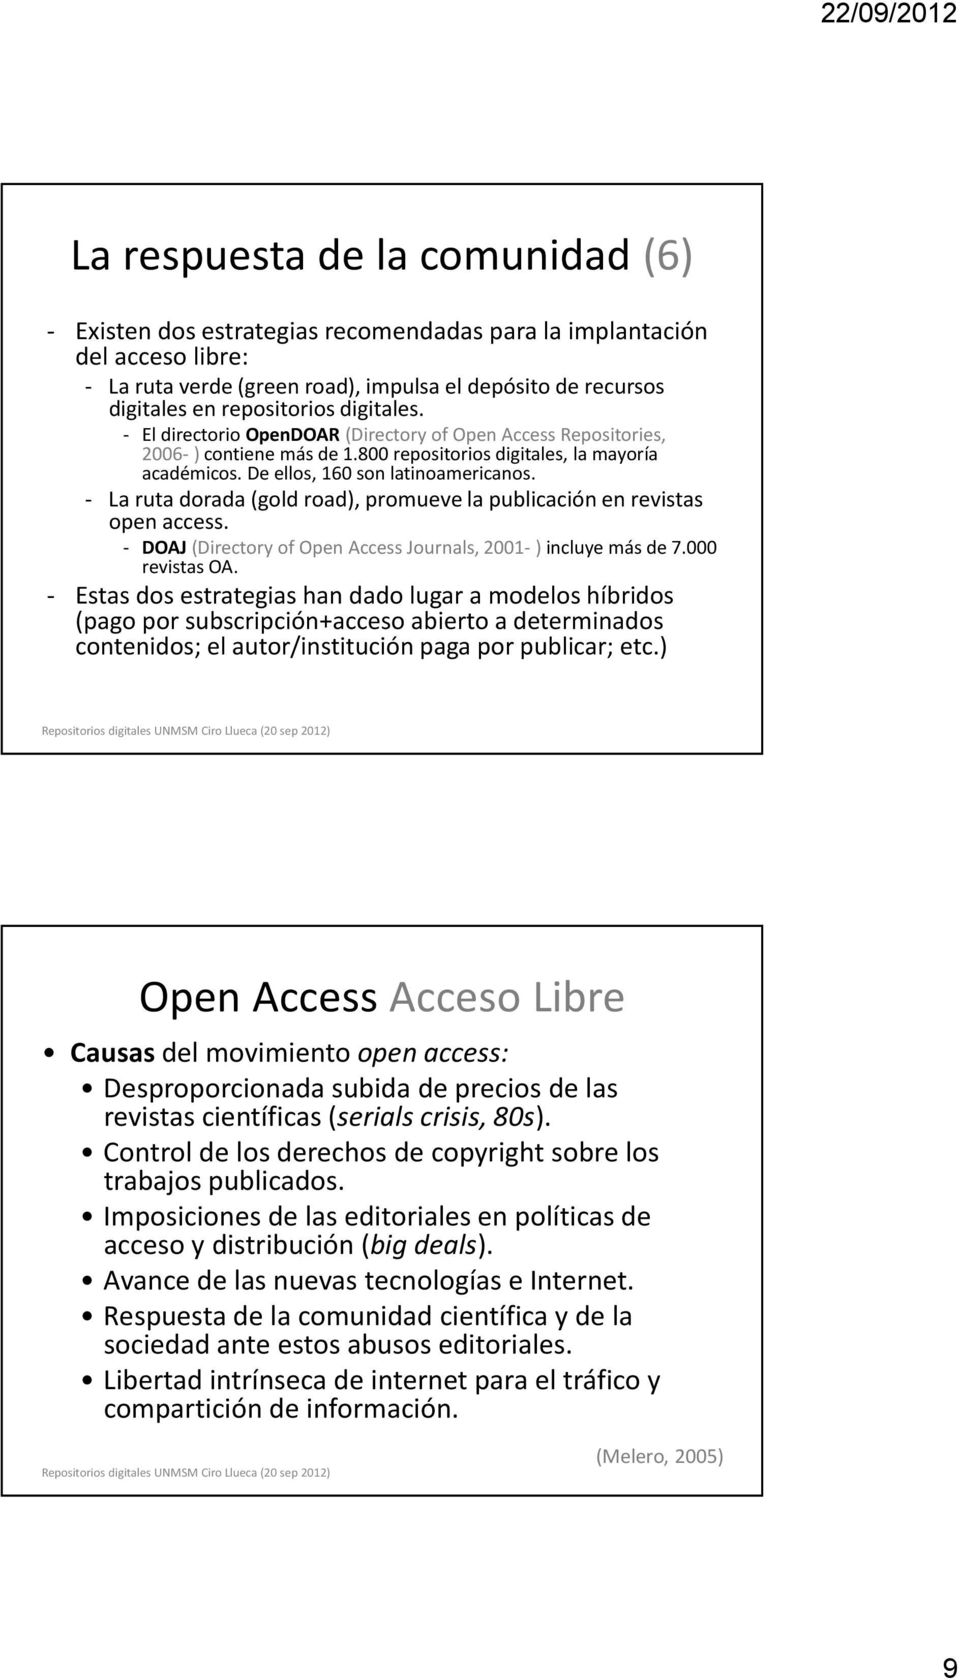 - La ruta dorada (gold road), promueve la publicación en revistas open access. - DOAJ(Directory of Open Access Journals, 2001-) incluye más de 7.000 revistas OA.